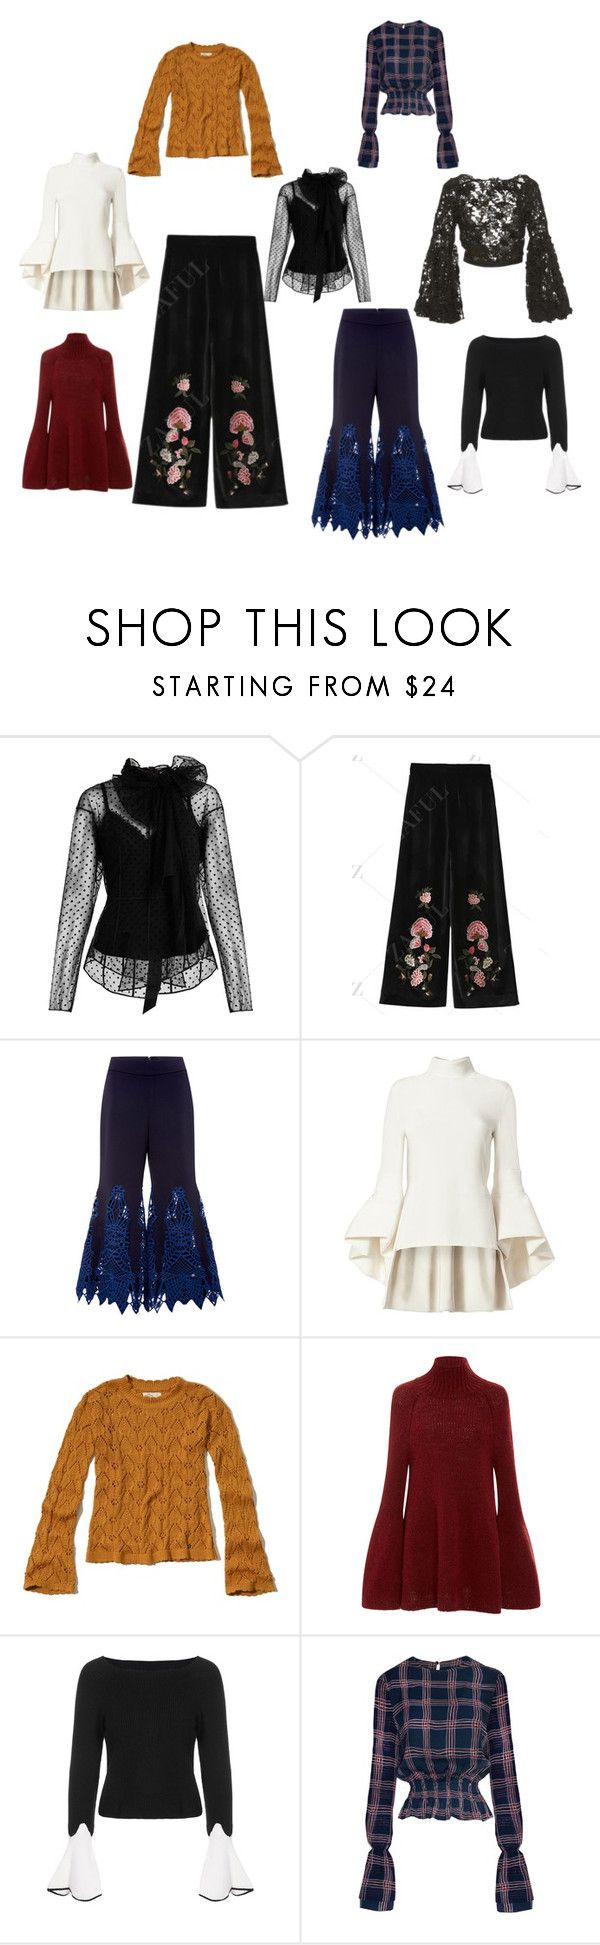 """70s"" by stapleluc on Polyvore featuring Marc Jacobs, Jonathan Simkhai, Brandon Maxwell, Hollister Co., Rosetta Getty and Johanna Ortiz"